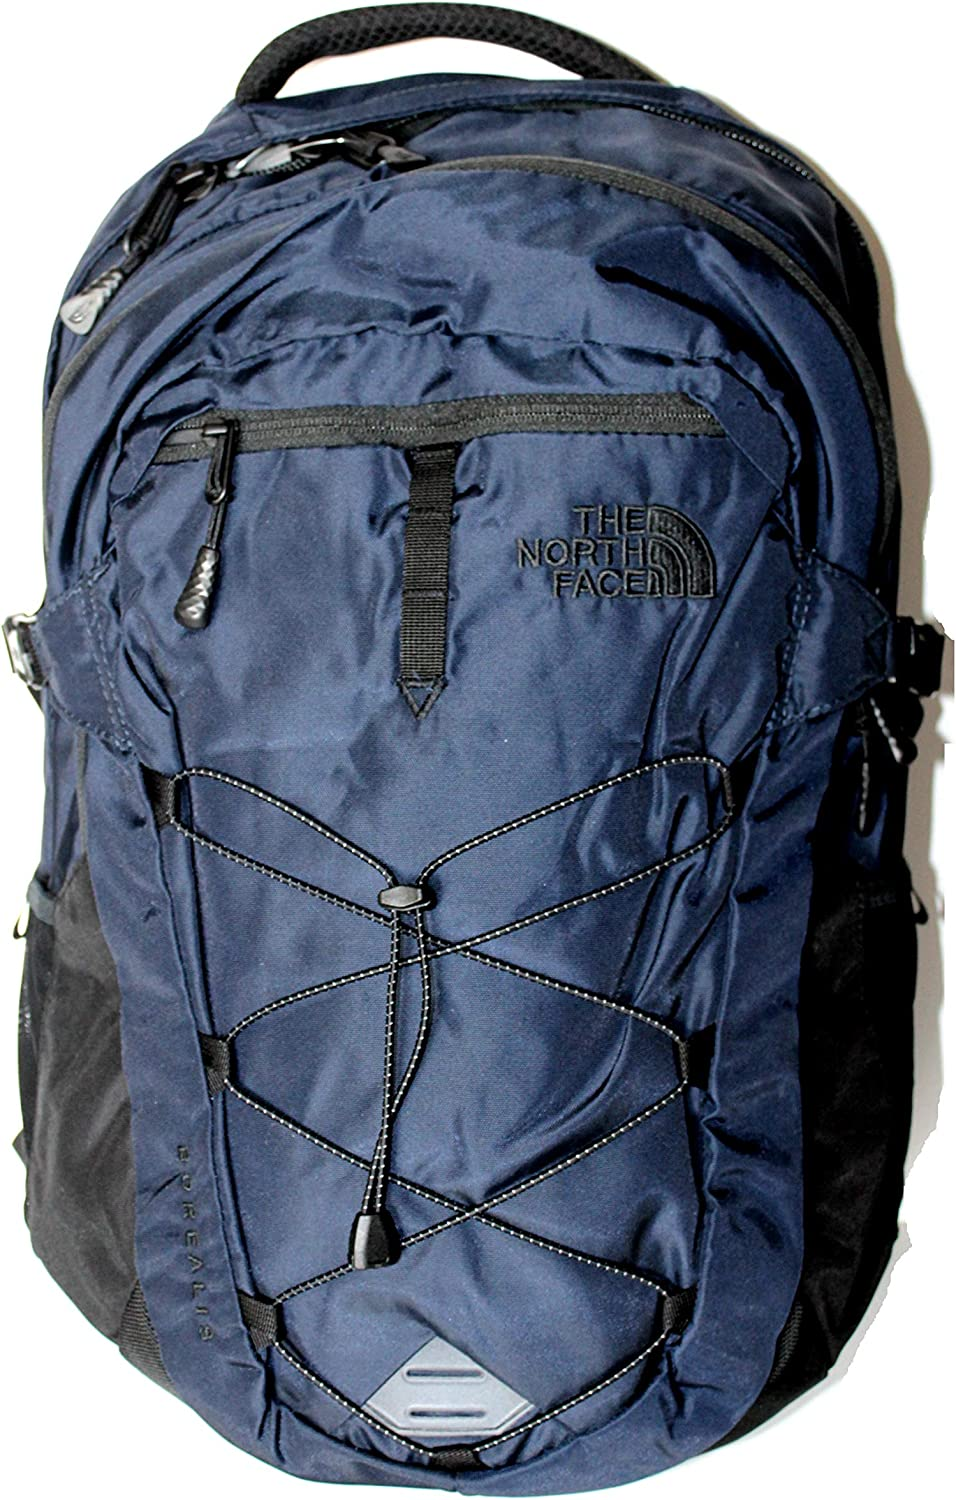 The North Face Unisex Borealis Backpack Laptop Daypack RTO (Urban Navy)